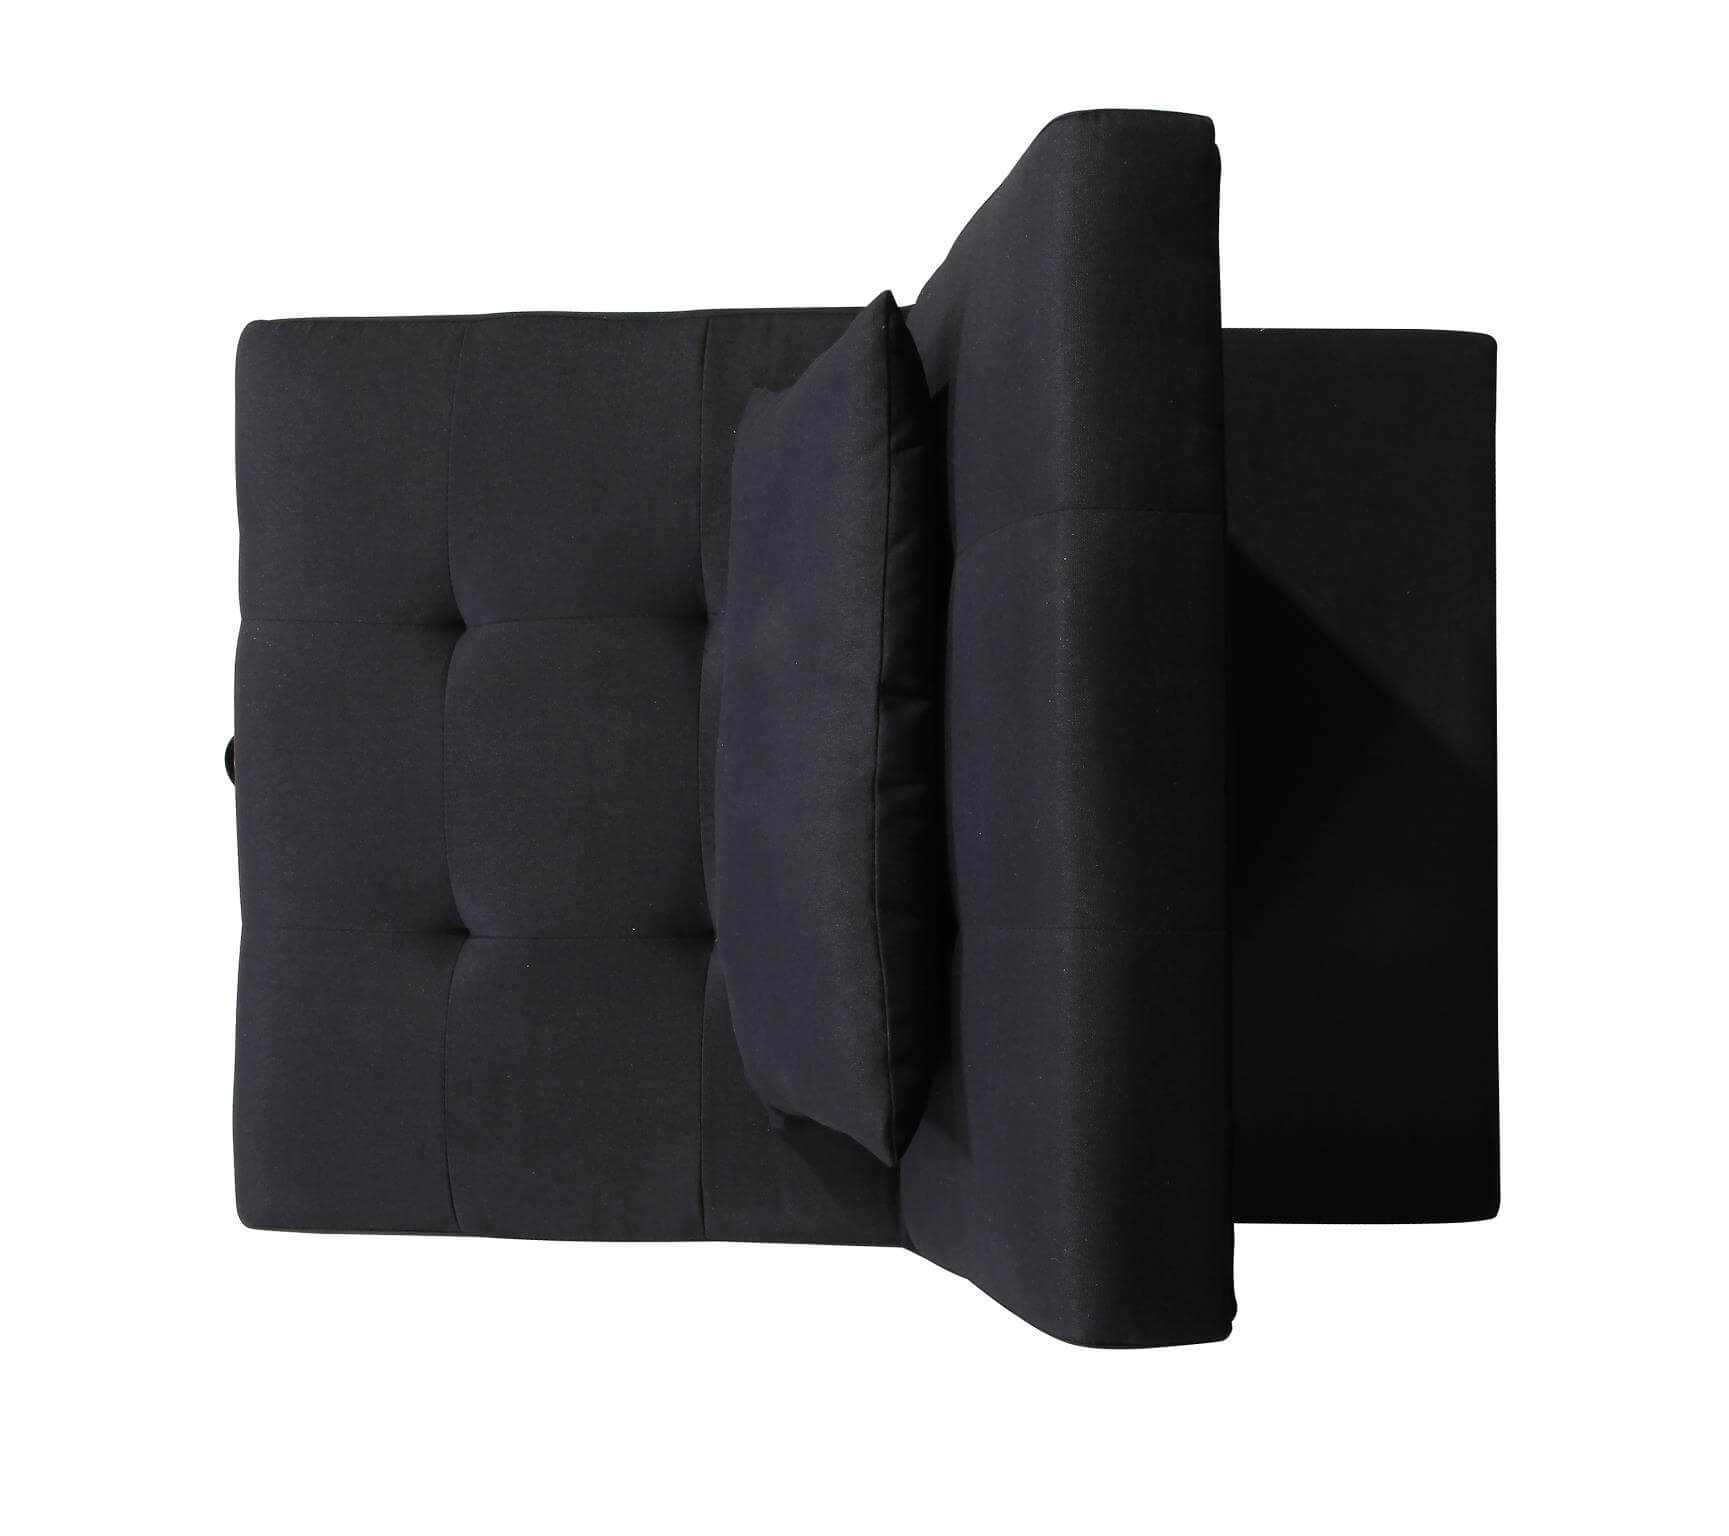 Randy Black Convertible Chair Urban Furniture Outlet